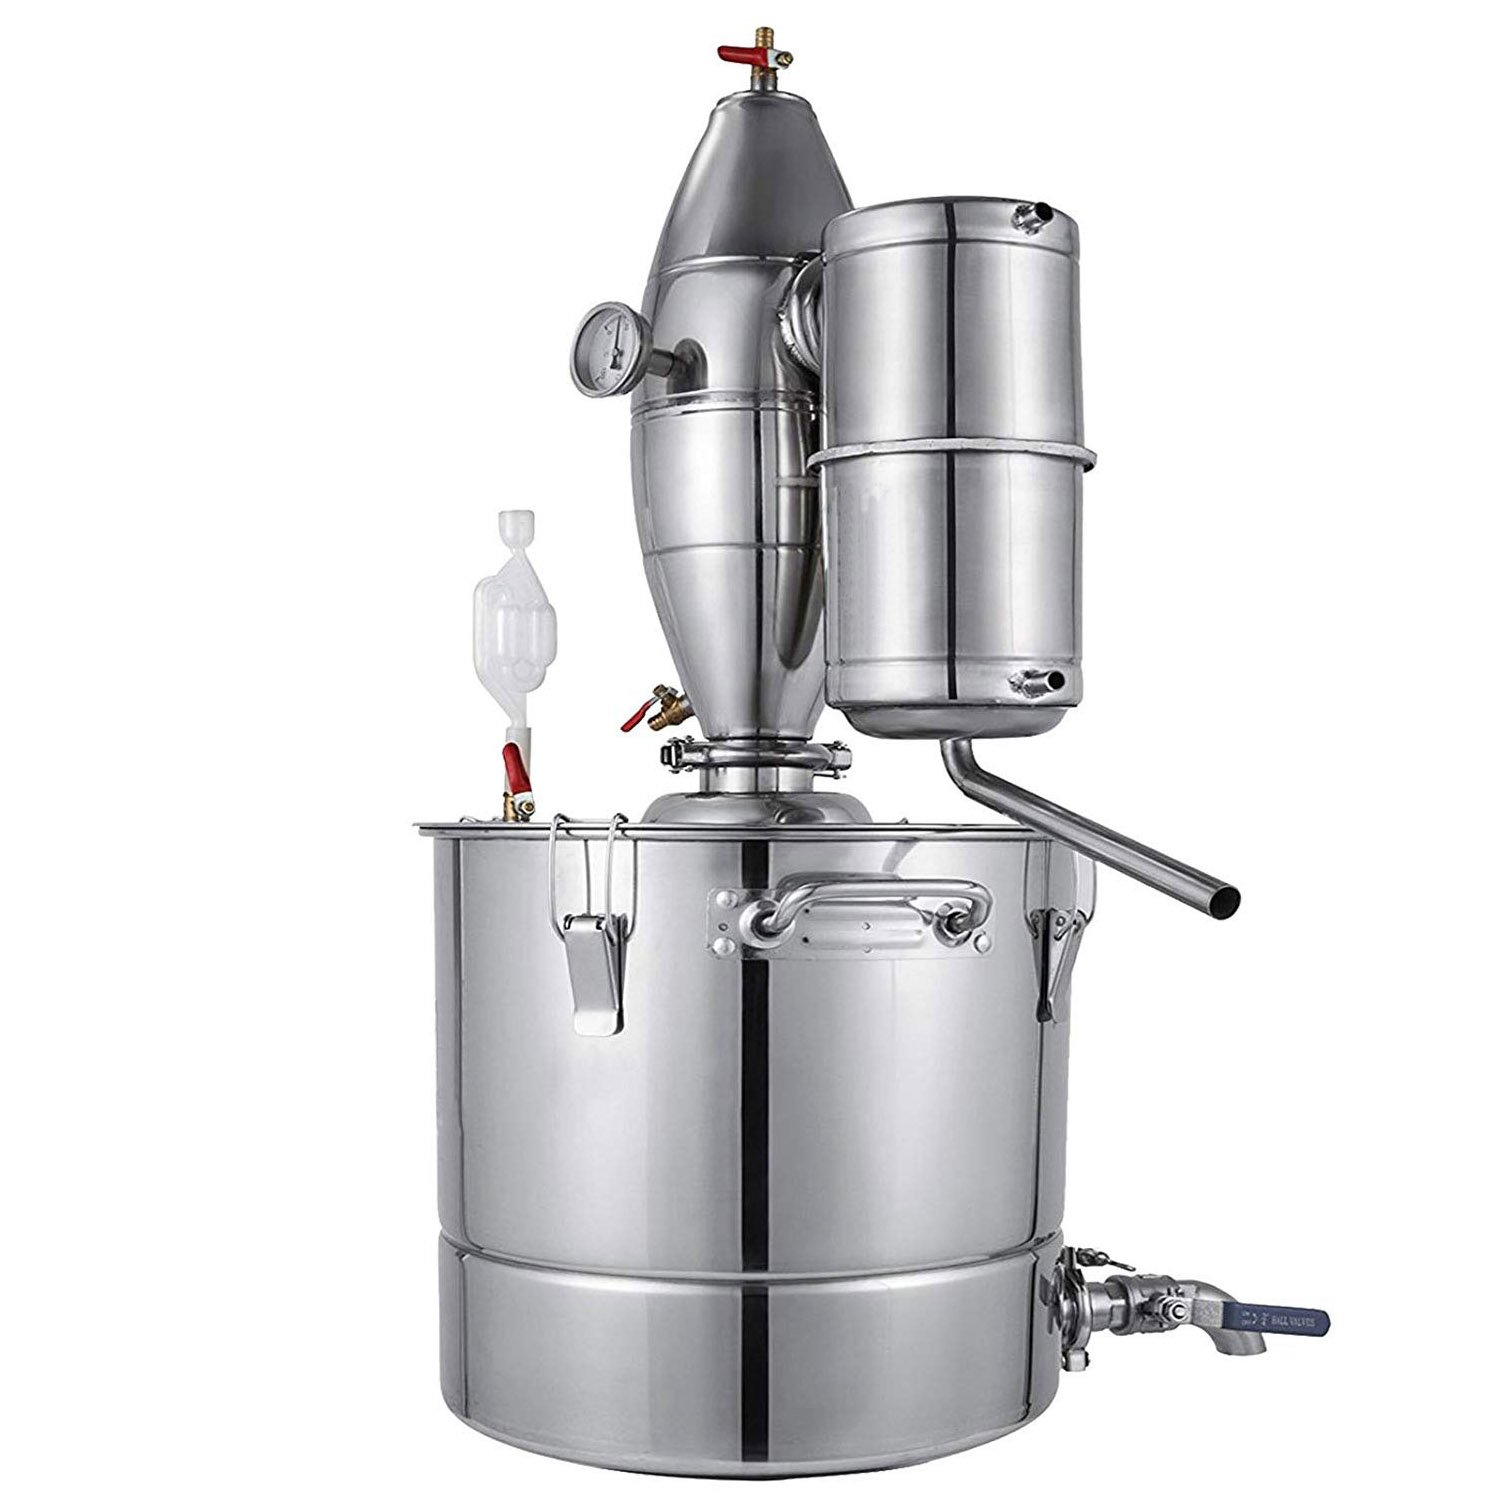 YaeBrew 30L 7.9Gal Water Alcohol Distiller 304 Stainless Steel Alcohol Distiller Home Brew Kit Moonshine Wine Making Boiler with Thermometer Home Brewing Kit